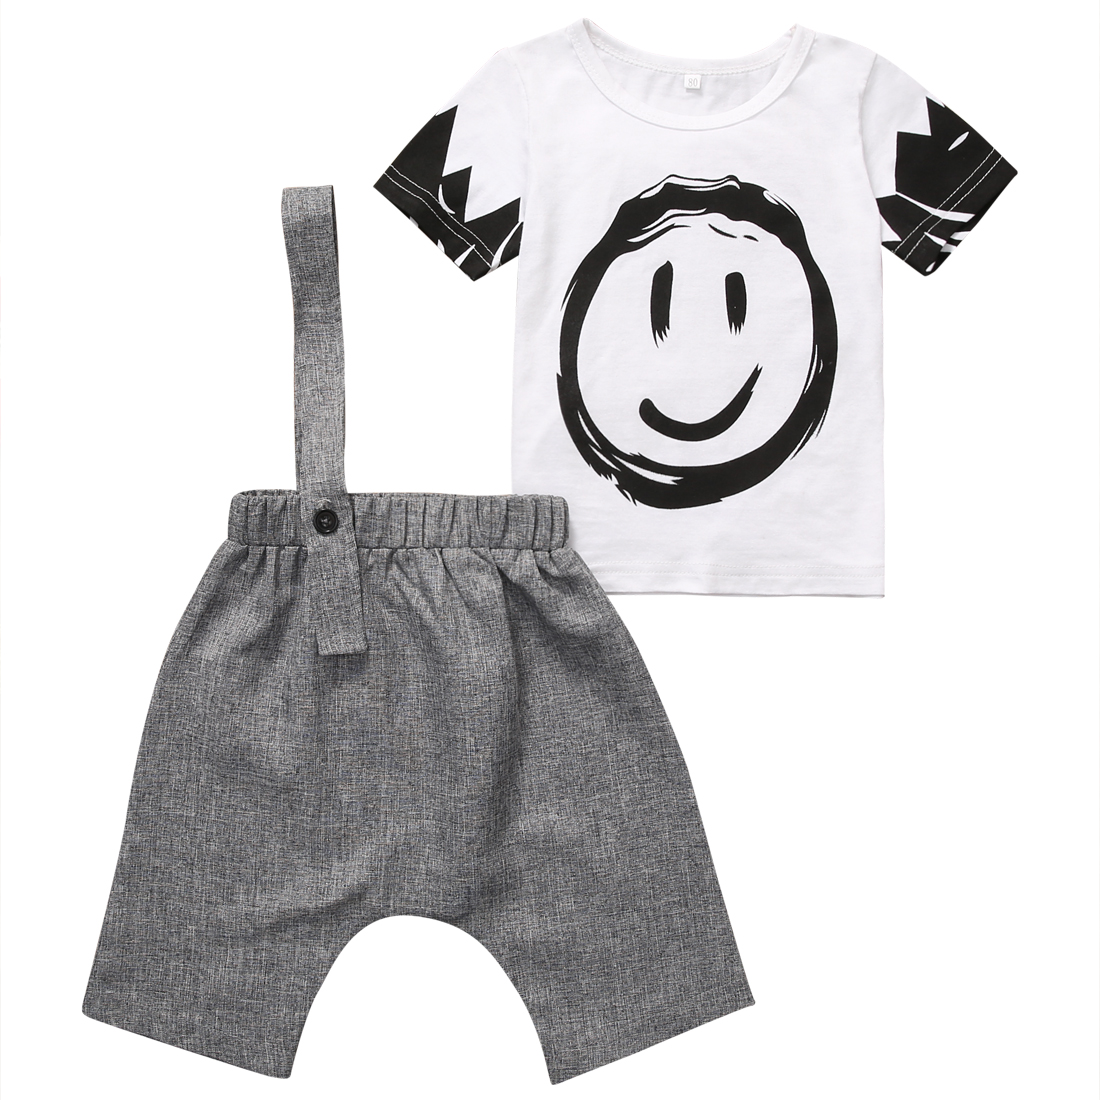 Summer 2018 Newborn Baby Boy Clothes Short Sleeve Cotton T-shirt Tops + Harem Overalls 2PCS Outfit Toddler Kids Clothing Set 3pcs mini mermaid newborn baby girl clothes 2017 summer short sleeve cotton romper bodysuit sea maid bottom outfit clothing set